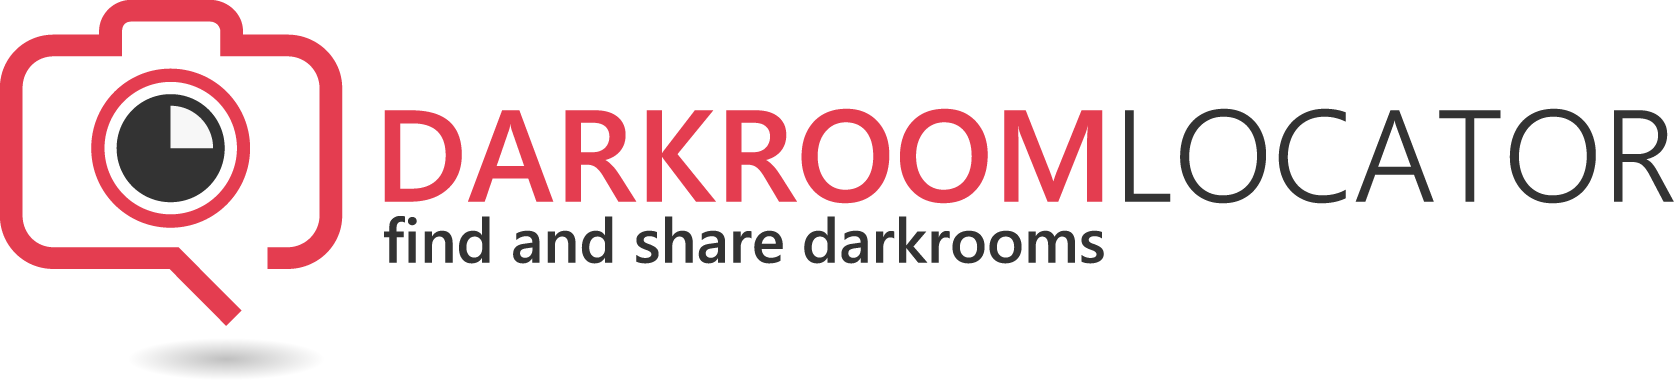 darkroom locator 3.0 – find and share darkrooms